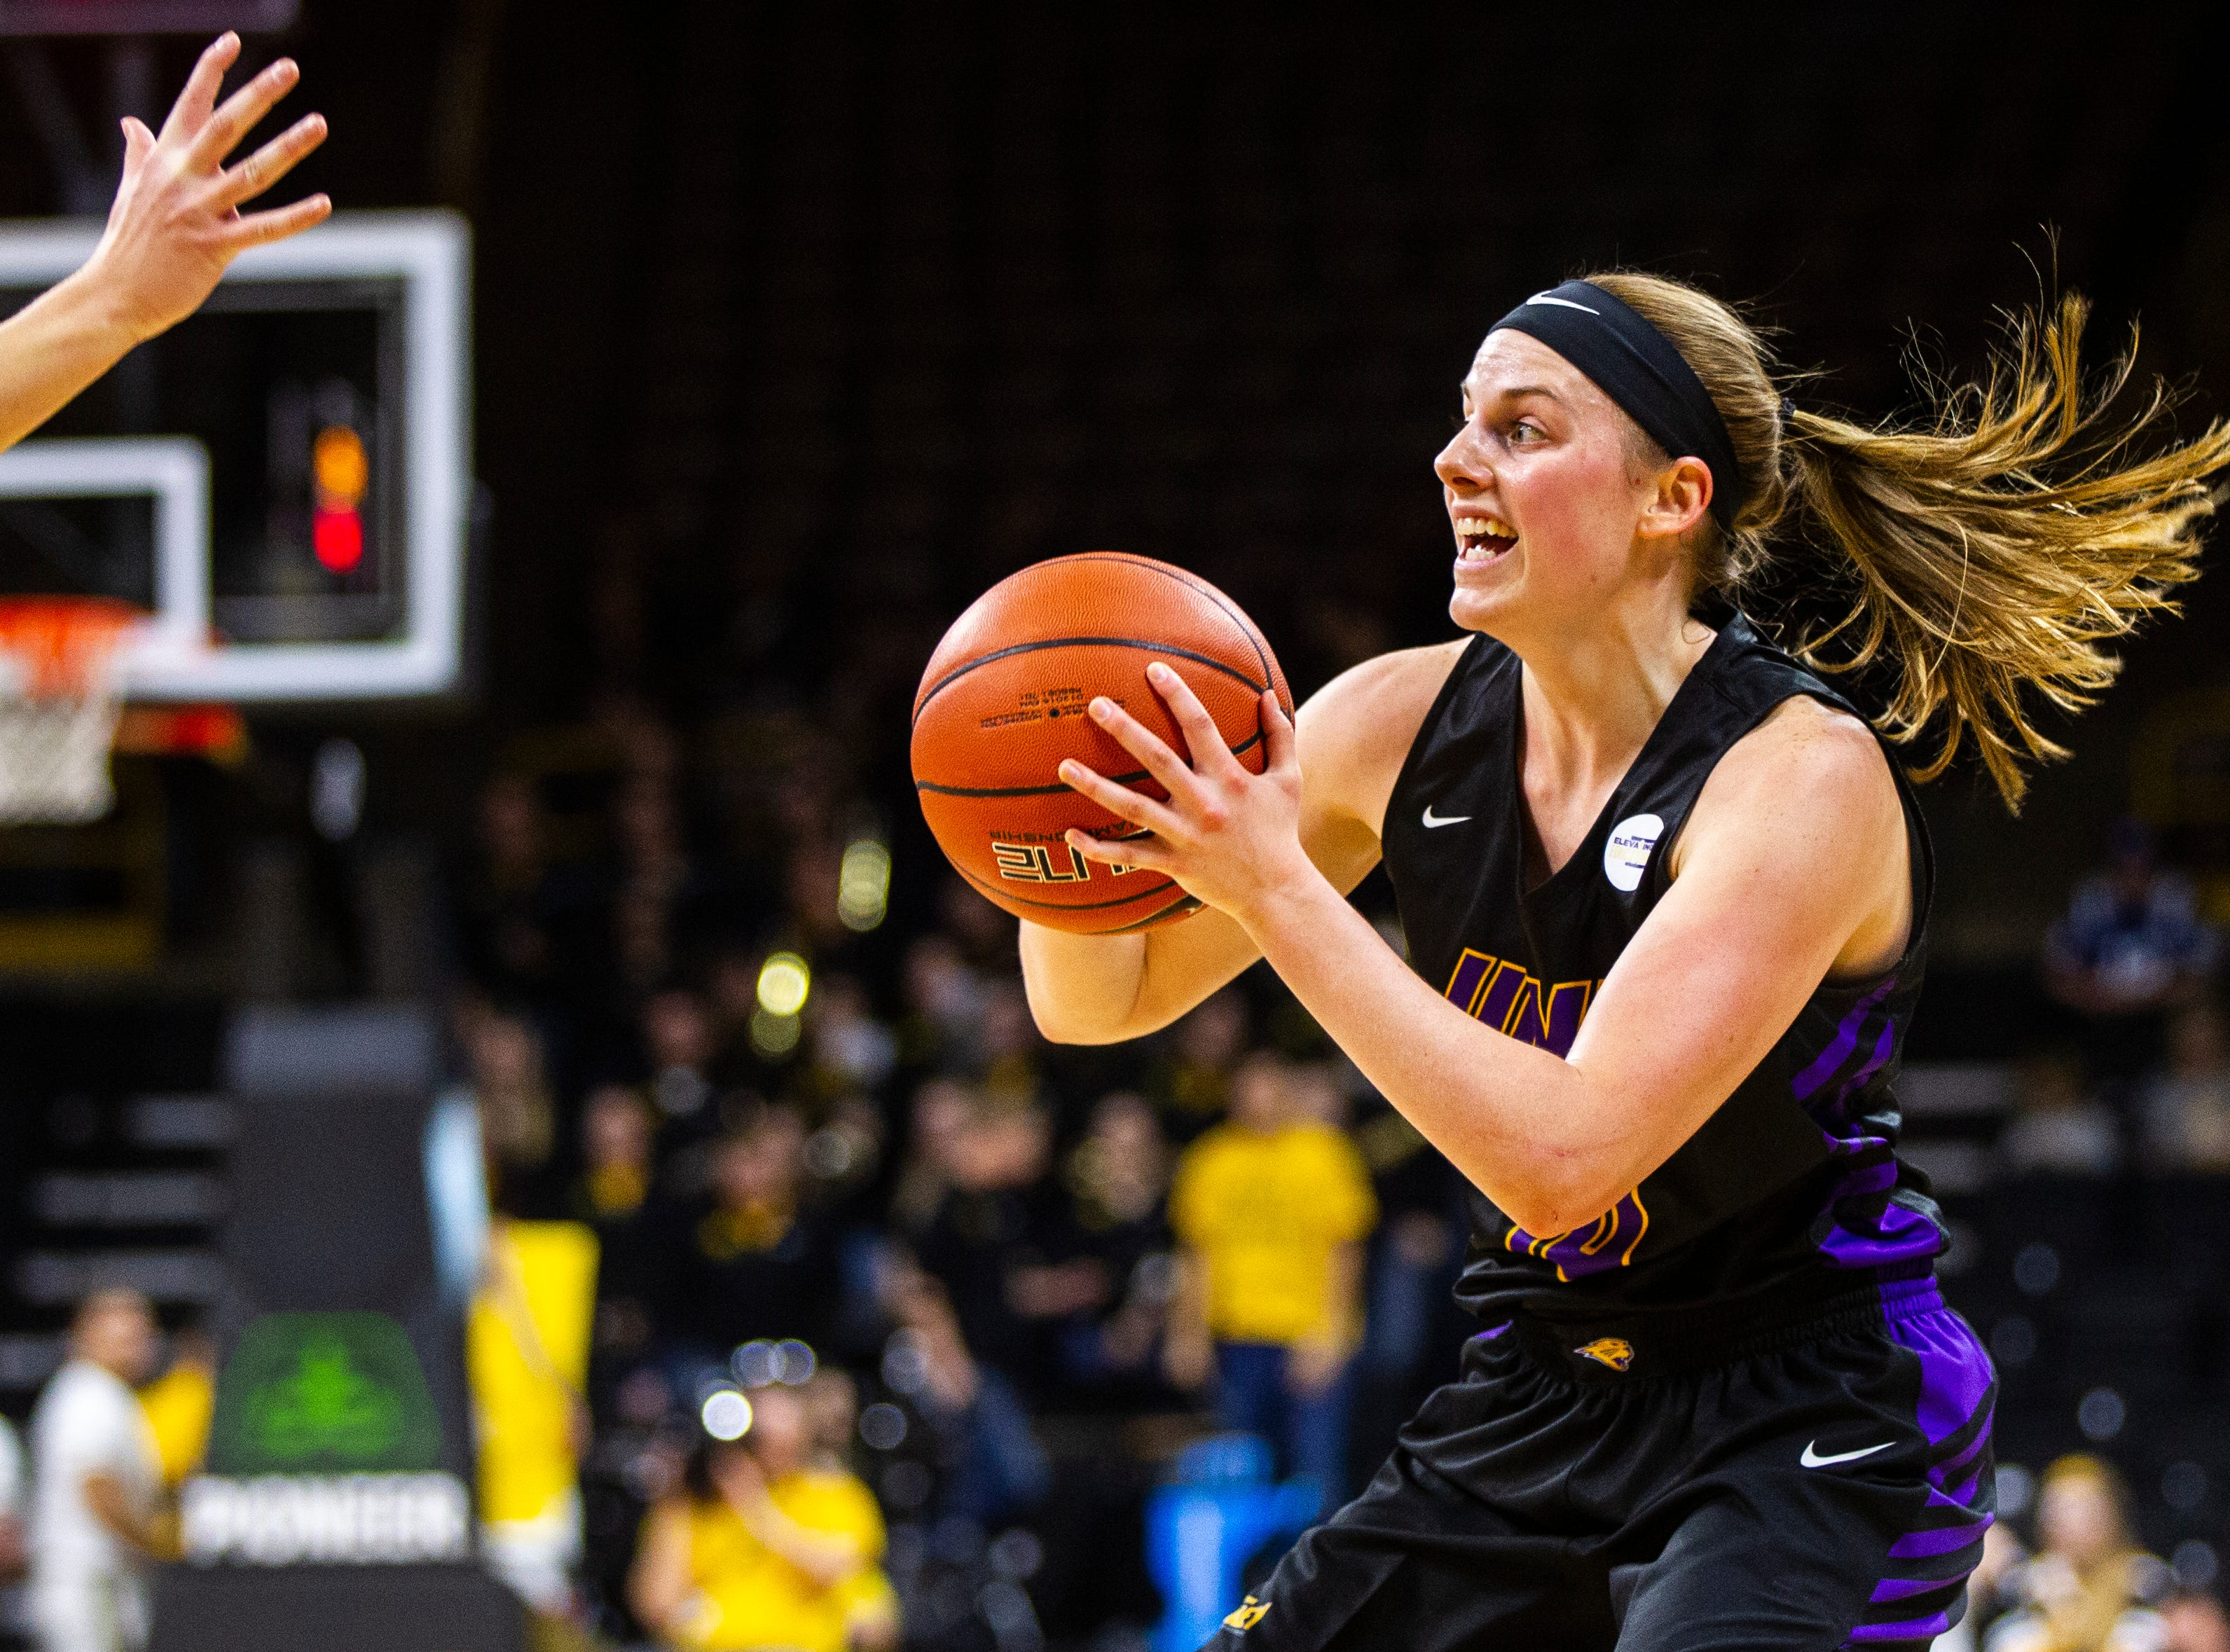 Northern Iowa guard Ellie Howell (10) looks to shoot during a NCAA women's basketball game on Sunday, Dec. 16, 2018, at Carver-Hawkeye Arena in Iowa City.